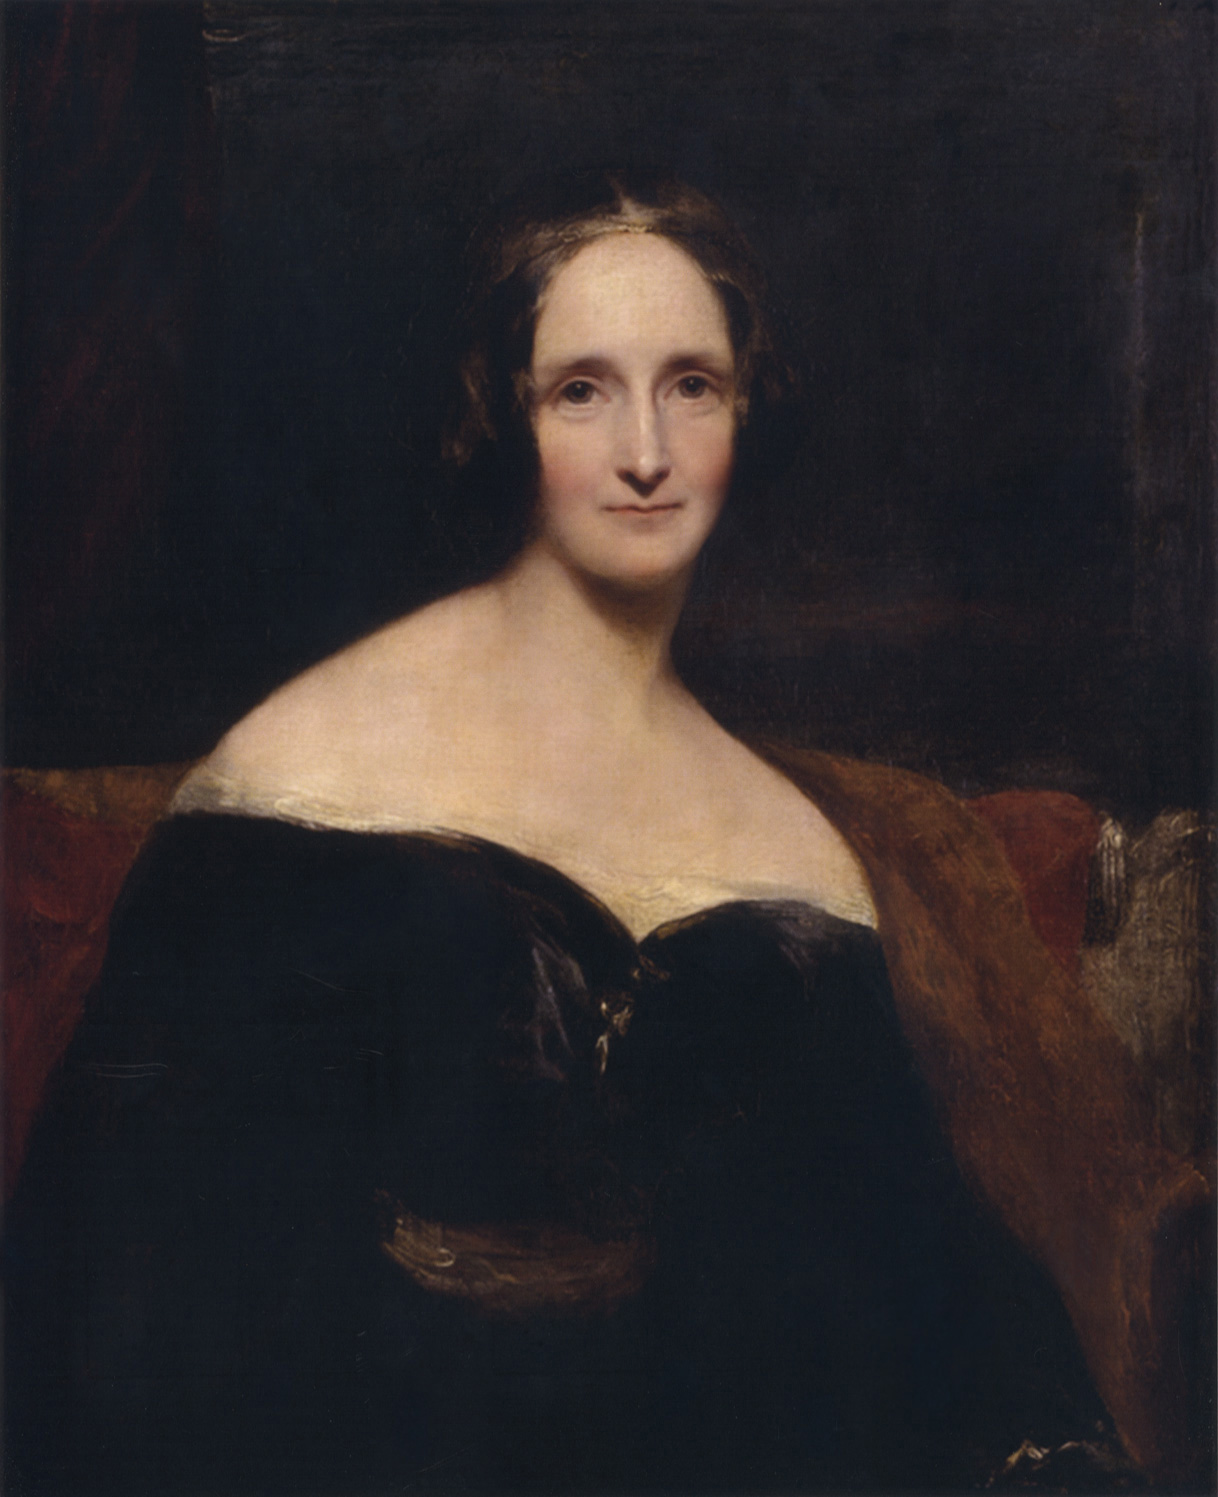 """""""Beware; I am fearless, and therefore powerful"""" - Mary Shelley"""